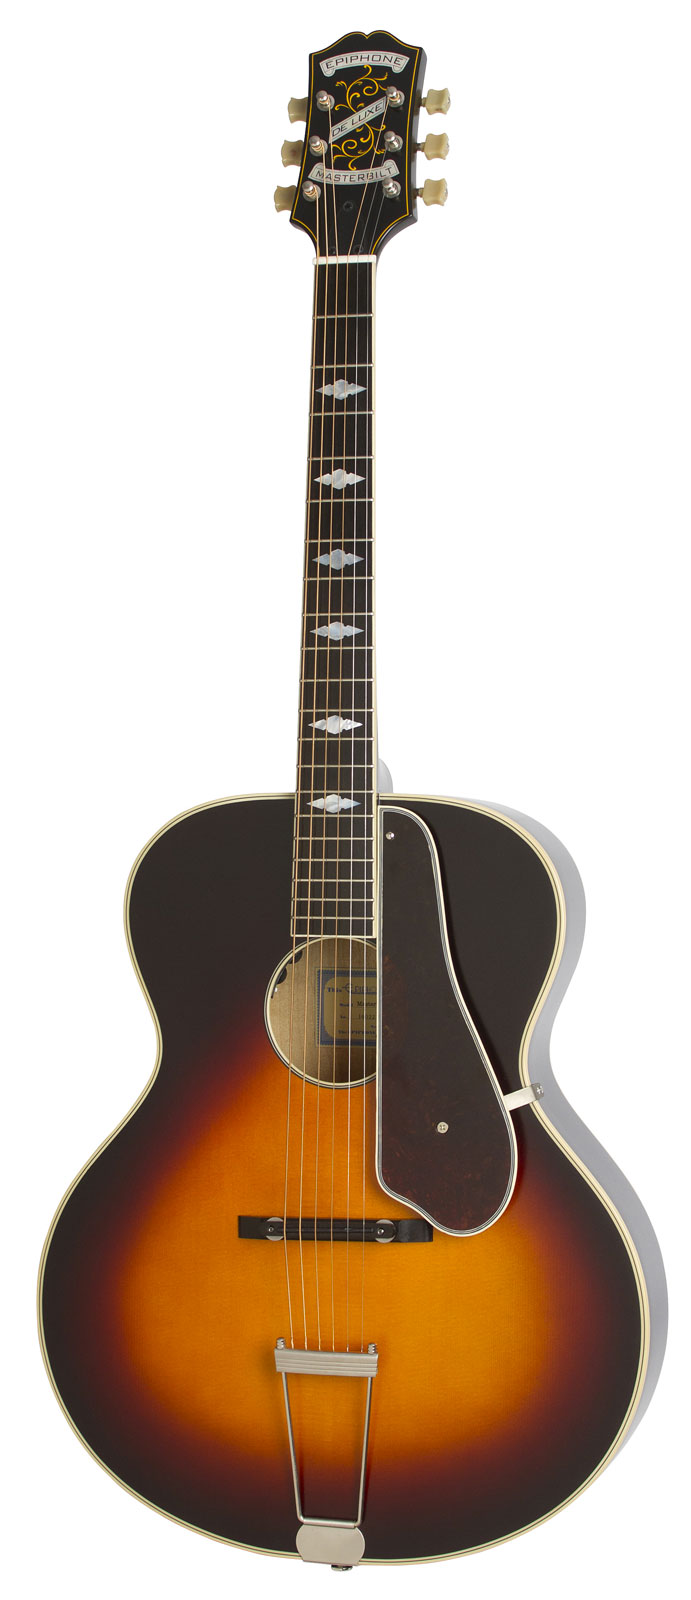 EPIPHONE DELUXE (ROUND HOLE) VS NEW CENTURY COLLECTION 2016